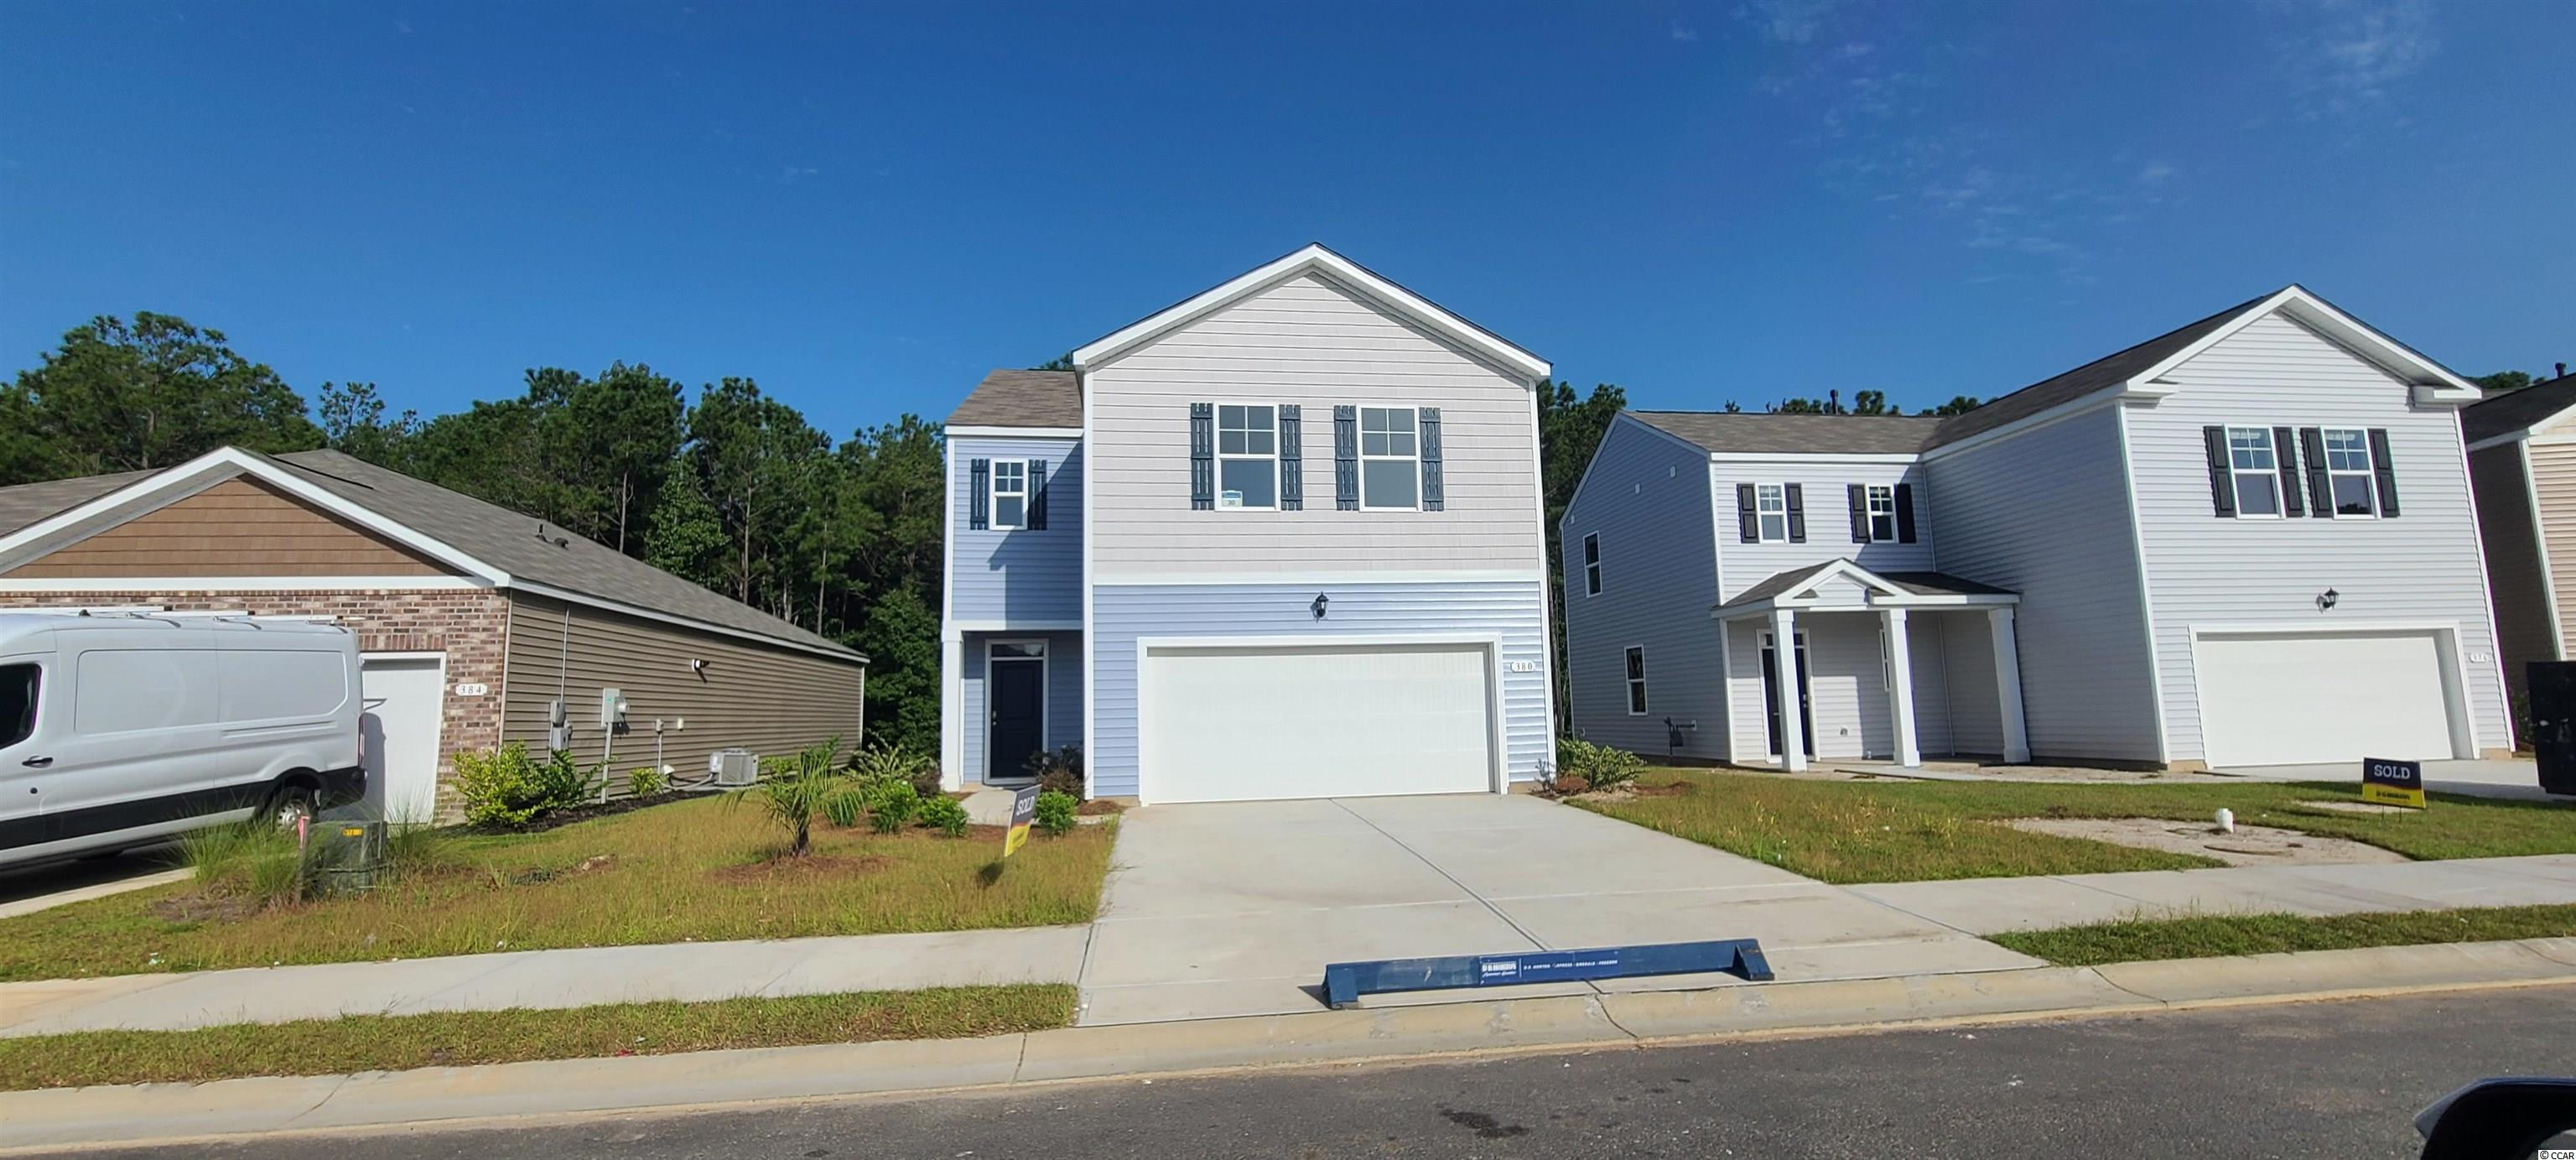 Oak Arbor is a brand new natural gas community conveniently located off of Highway 707 in Murrells Inlet close to shopping, schools, and the famous Murrells Inlet Marsh Walk. Our Popular Elston plan features a gourmet kitchen that opens to a large living room, dining room combination. Imagine spending the holidays with plenty of room for everyone! Sliding glass doors off the great room lead to the rear covered porch creating a seamless transition from indoor to outdoor living. Granite in the kitchen, white painted cabinetry, and laminate wood flooring throughout the whole first floor. The spacious primary bedroom is a tranquil retreat with its own spacious bathroom and walk-in closet. All additional bedrooms are a generous size and the laundry room is conveniently located upstairs, as well. Tankless gas water heater and a 2-car garage with garage door opener also included. It gets better- this is America's Smart Home! Ask an agent today about our industry leading smart home technology package that is included in each of our new homes.   *Photos are of a similar Elston home. (Home and community information, including pricing, included features, terms, availability and amenities, are subject to change prior to sale at any time without notice or obligation. Square footages are approximate. Pictures, photographs, colors, features, and sizes are for illustration purposes only and will vary from the homes as built. Equal housing opportunity builder.)